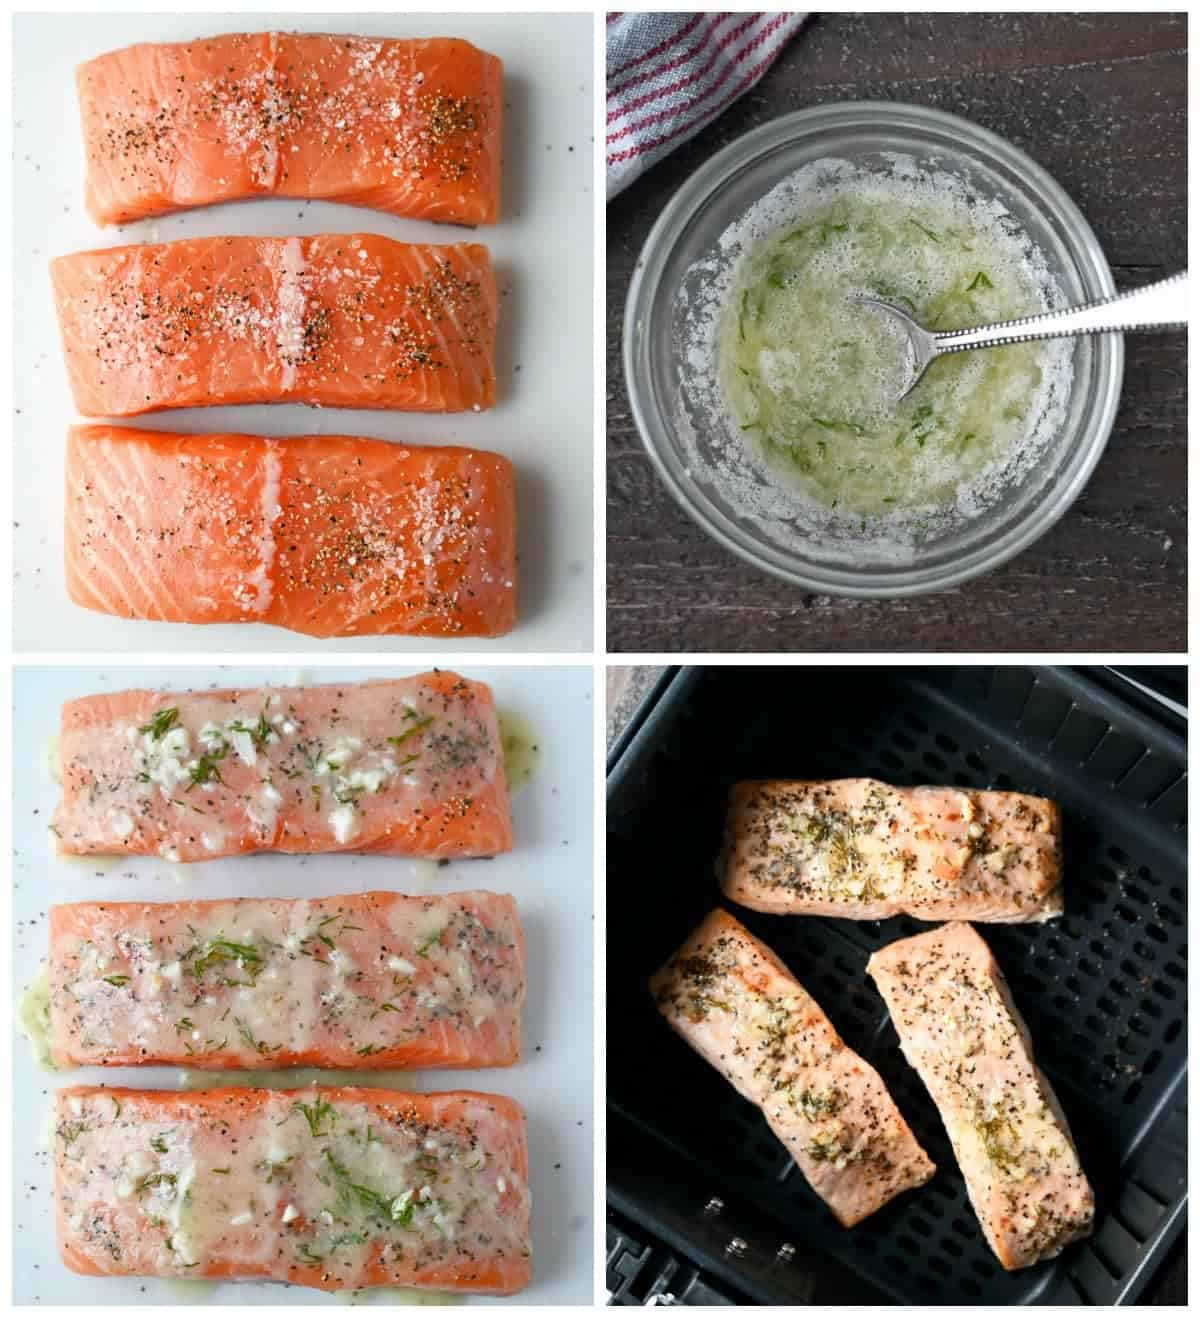 Four process photos. First one, three raw salmon filets on a cutting board. Second one, lemon butter sauce in a small bowl with a spoon. Thirn one, lemon butter sauce brushed on rew salmon filets. Fourth one, salmon filets cooked in a air fryer basket.